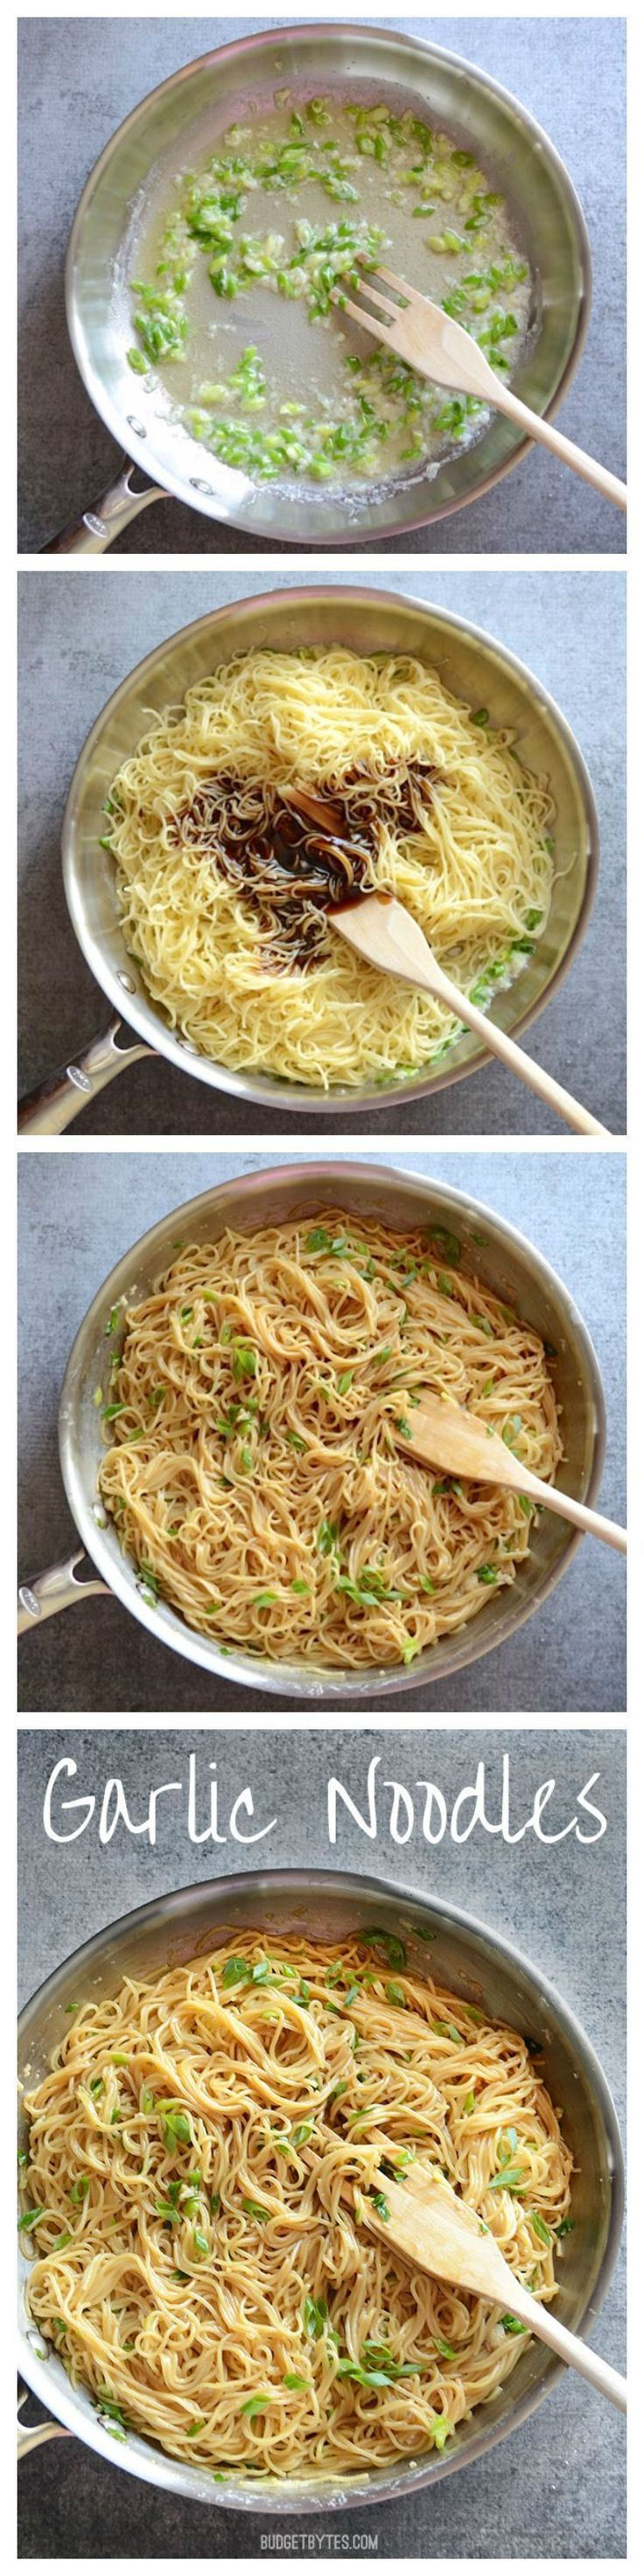 Garlic Noodles - an at-home substitute for lo mein?? #chinesefoodrecipes